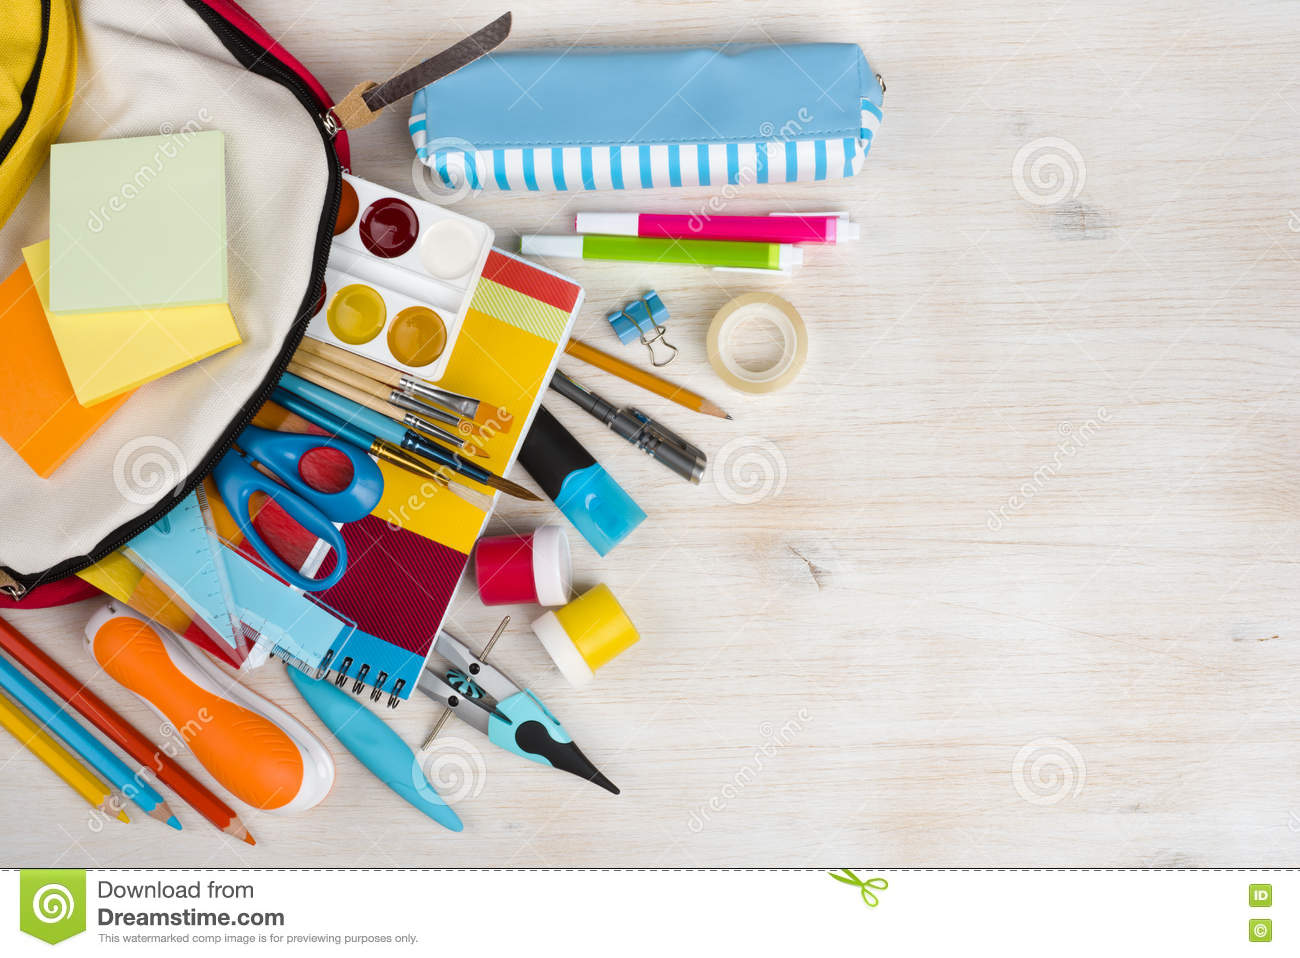 various stationery school and office supplies over wooden